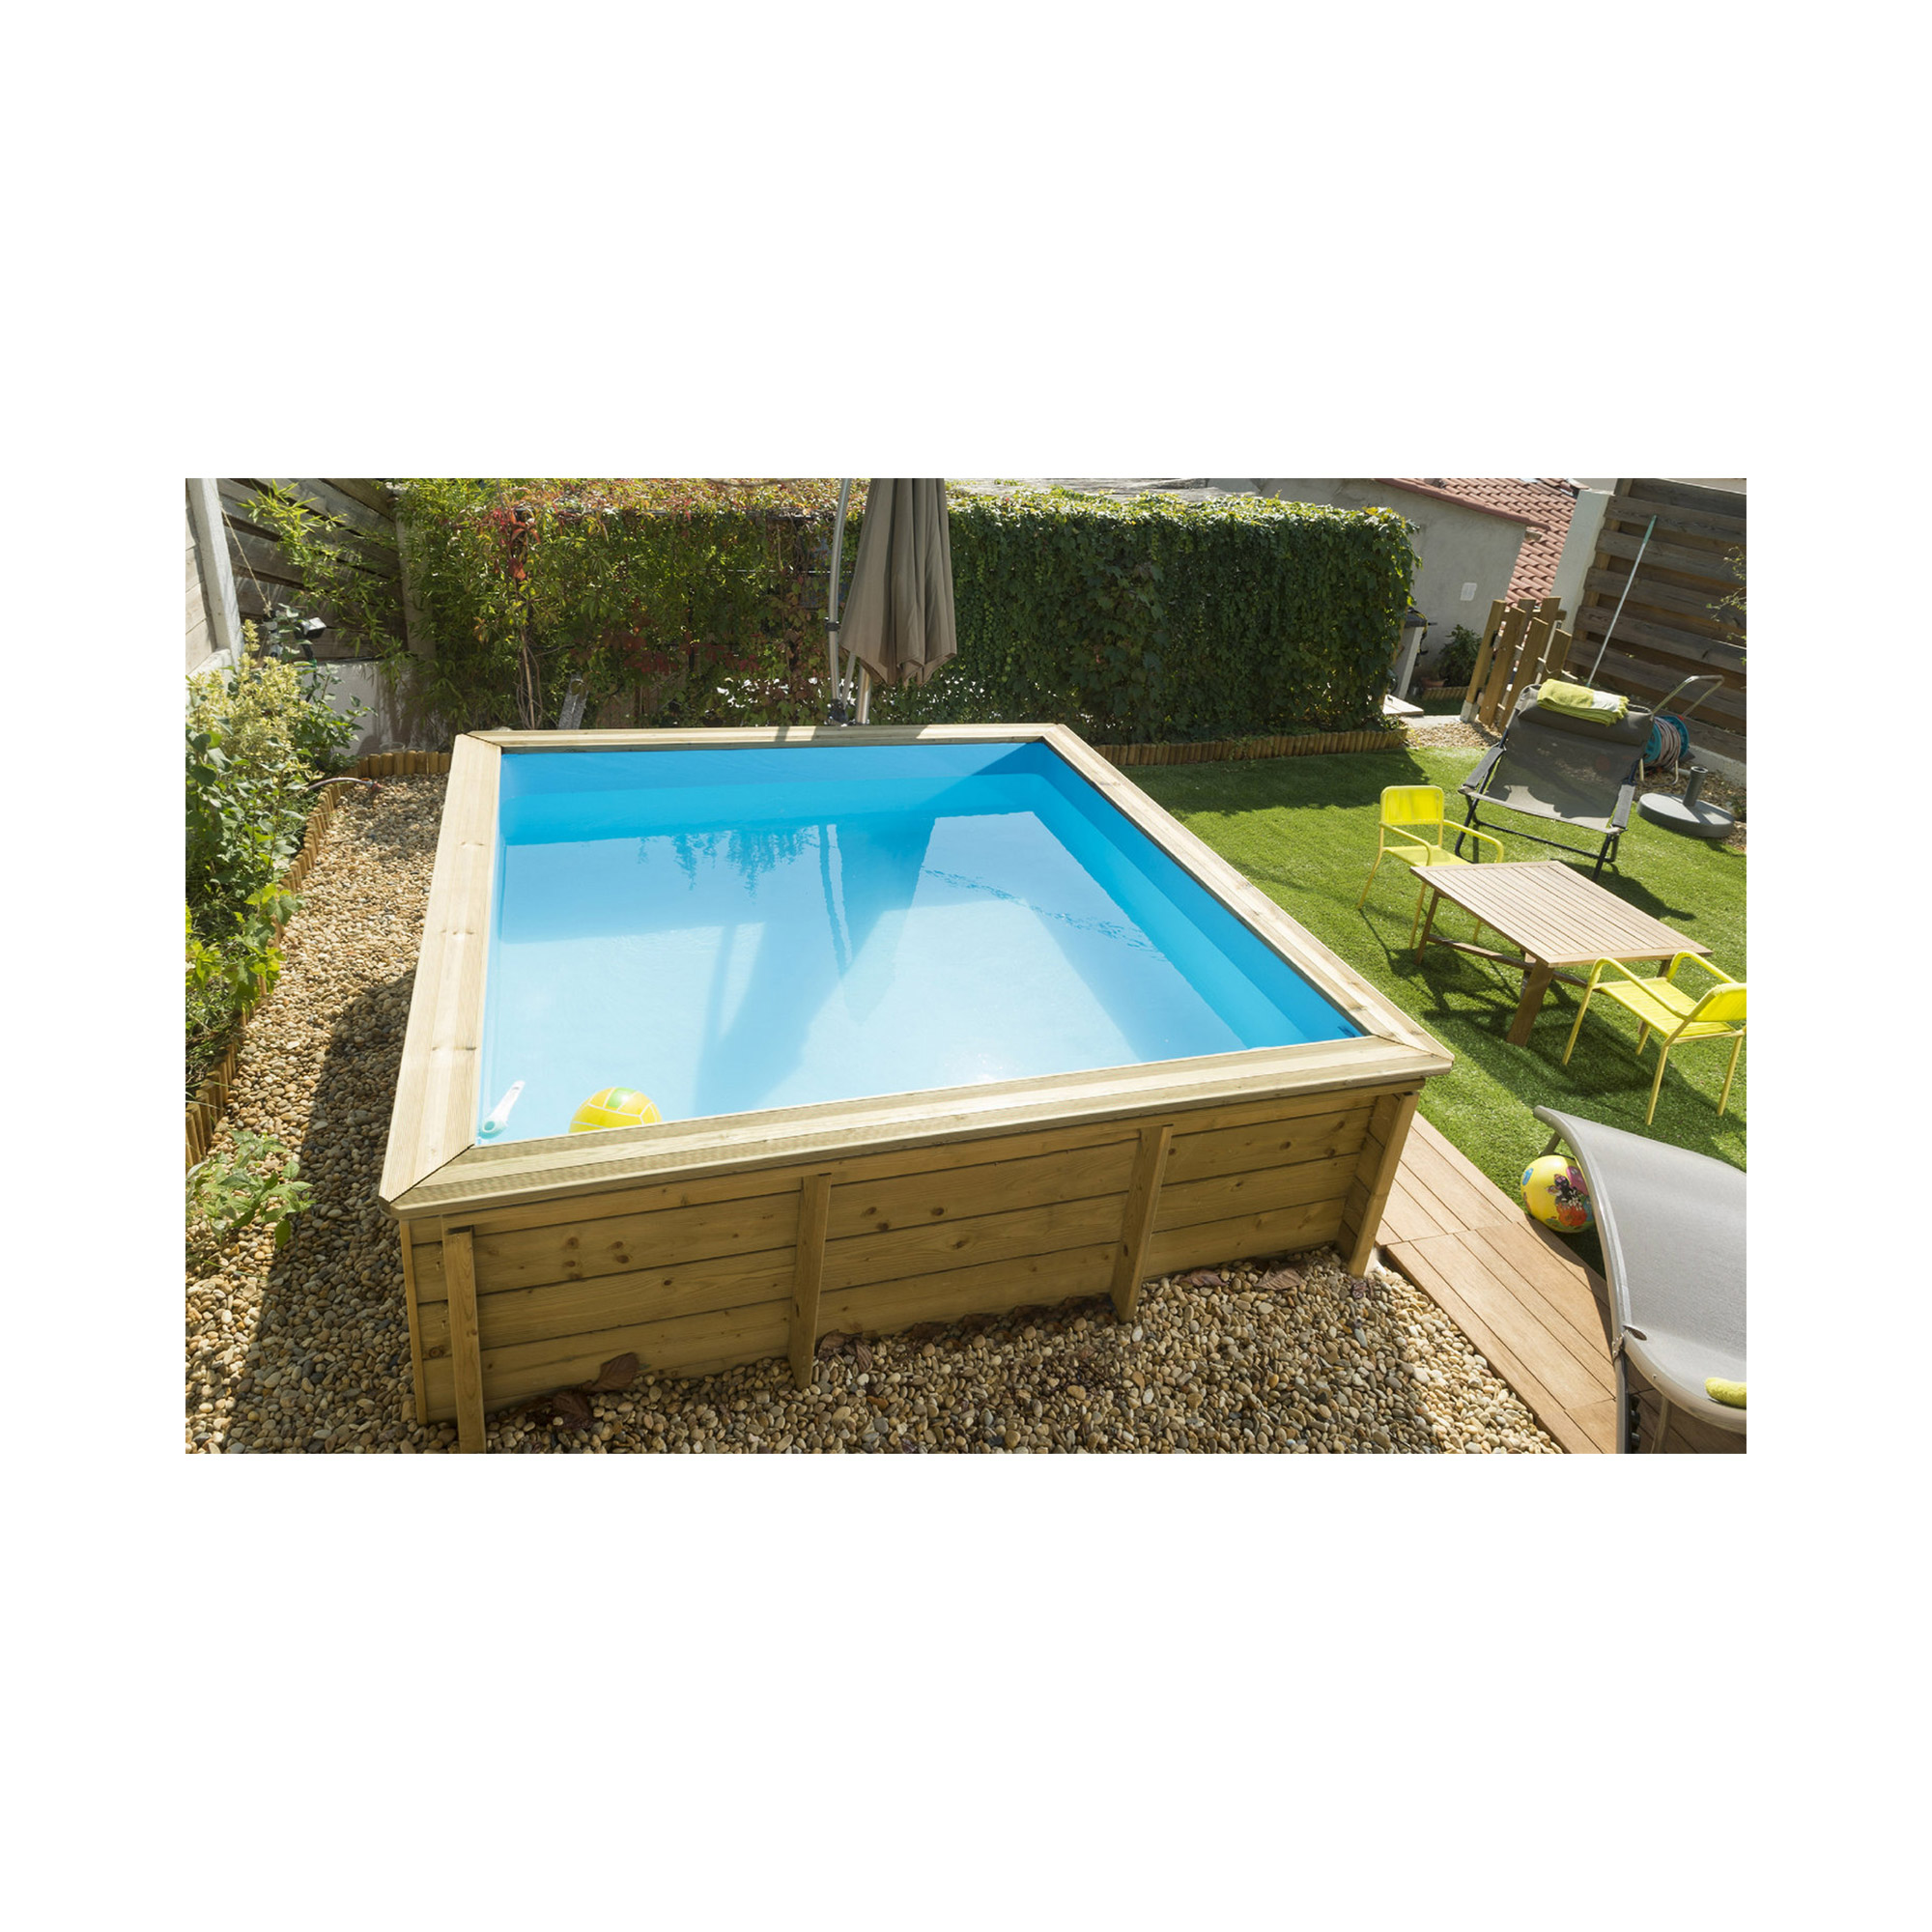 Piscine bois carr e hors sol la tropic junior piscines for Piscine hors sol bois carree